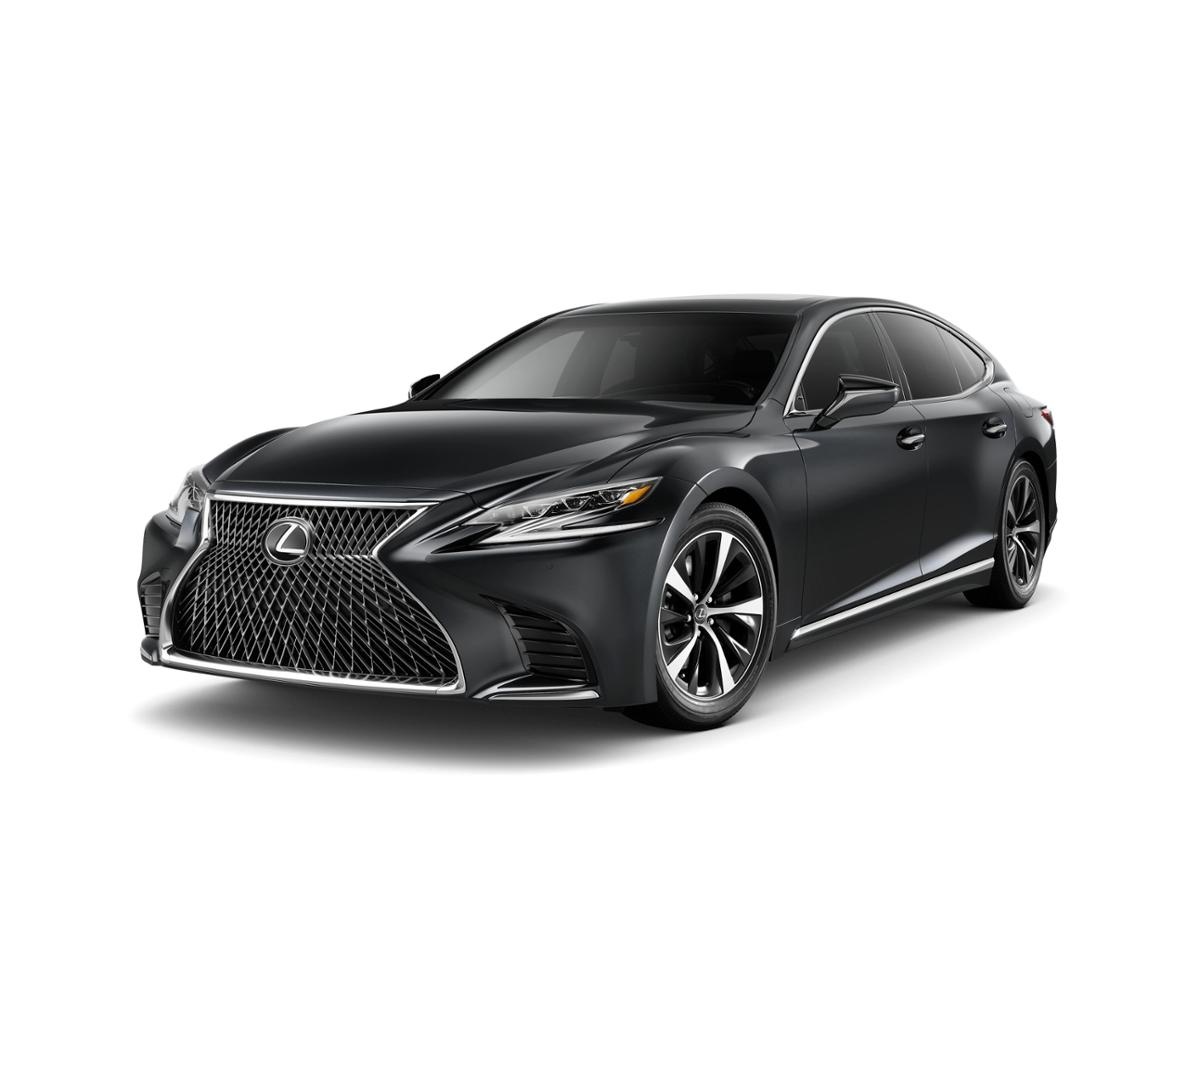 2019 Lexus LS 500 Vehicle Photo in Henderson, NV 89011